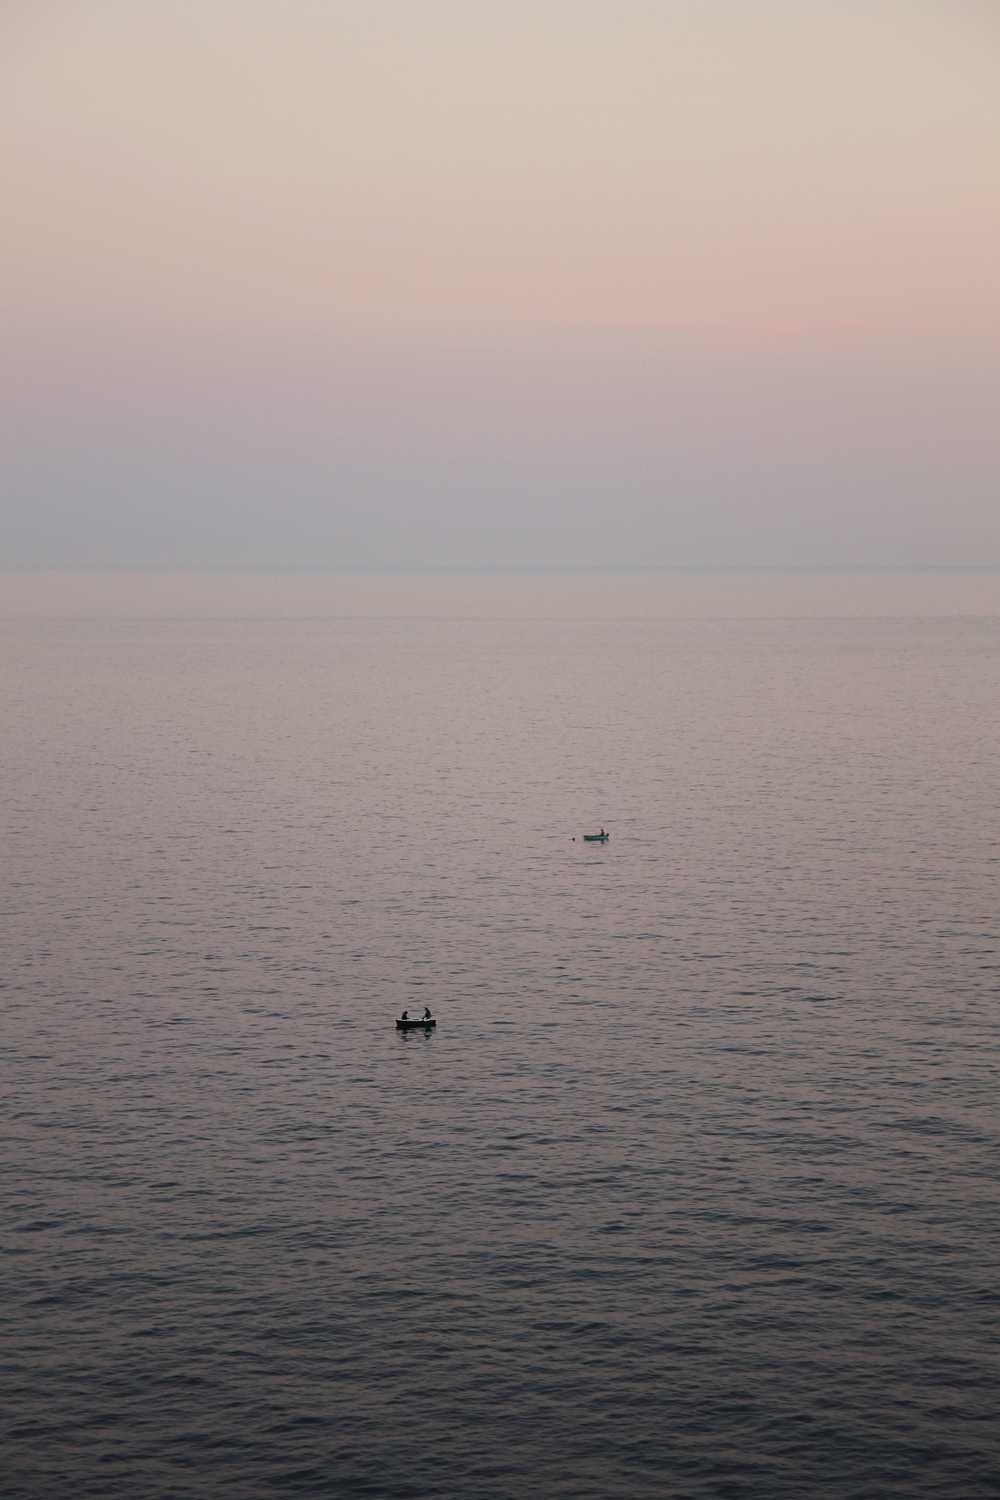 Evening views from our place - fishermen making catching fresh fish for the restaurants.